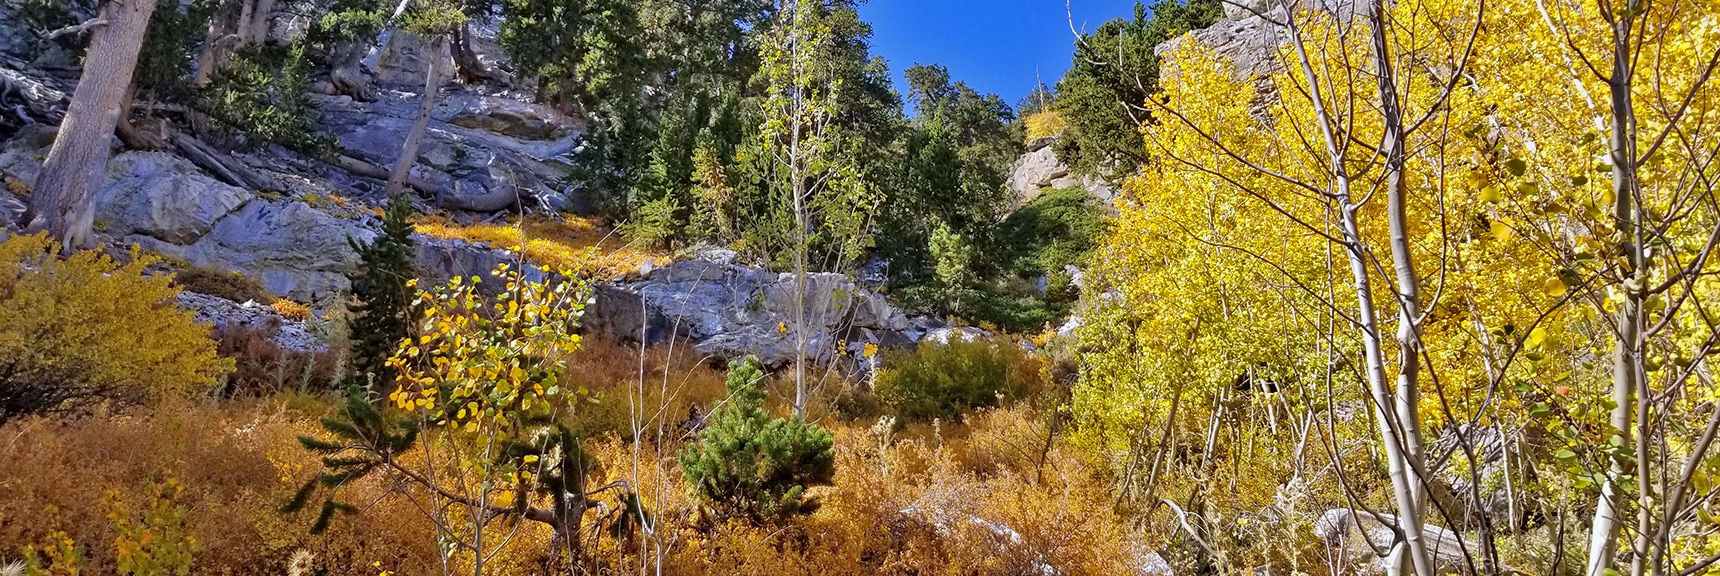 Mummy Springs Early October Fall Colors | Mummy Springs Loop | Mt. Charleston Wilderness | Spring Mountains, Nevada